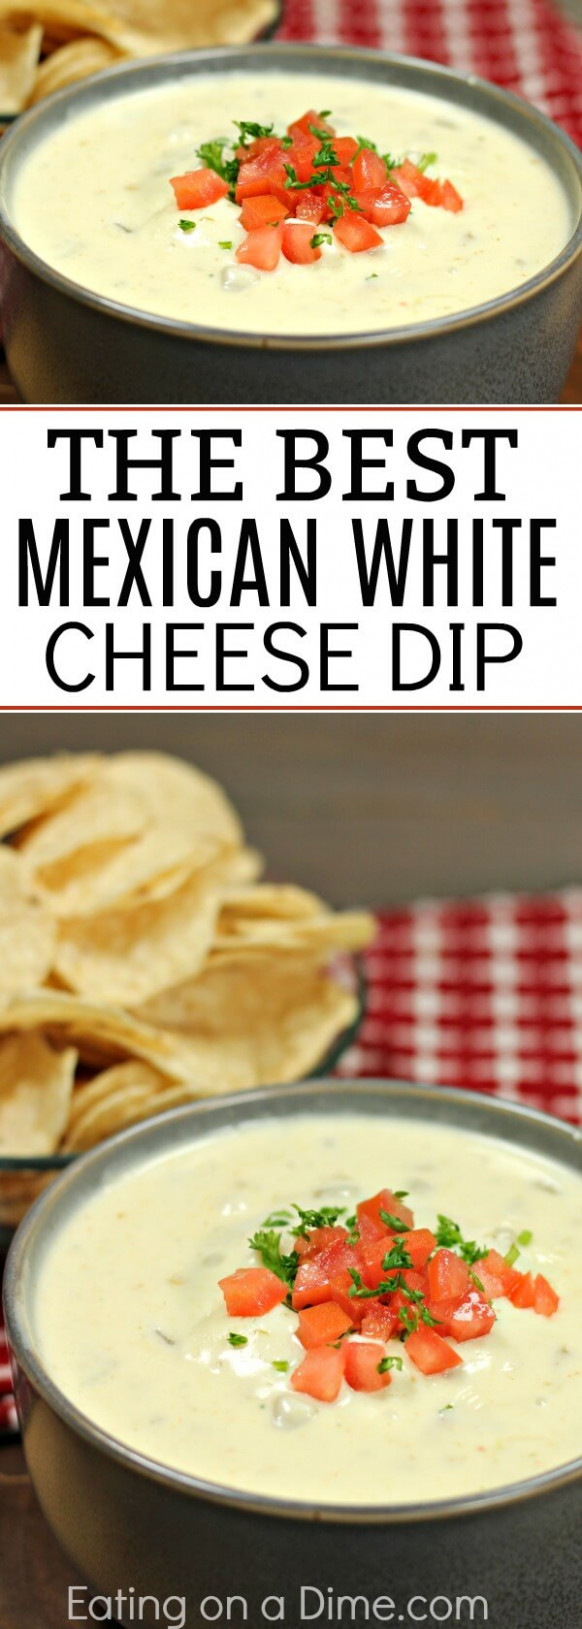 The Best Mexican White Cheese Dip - Recipes Authentic Mexican Food